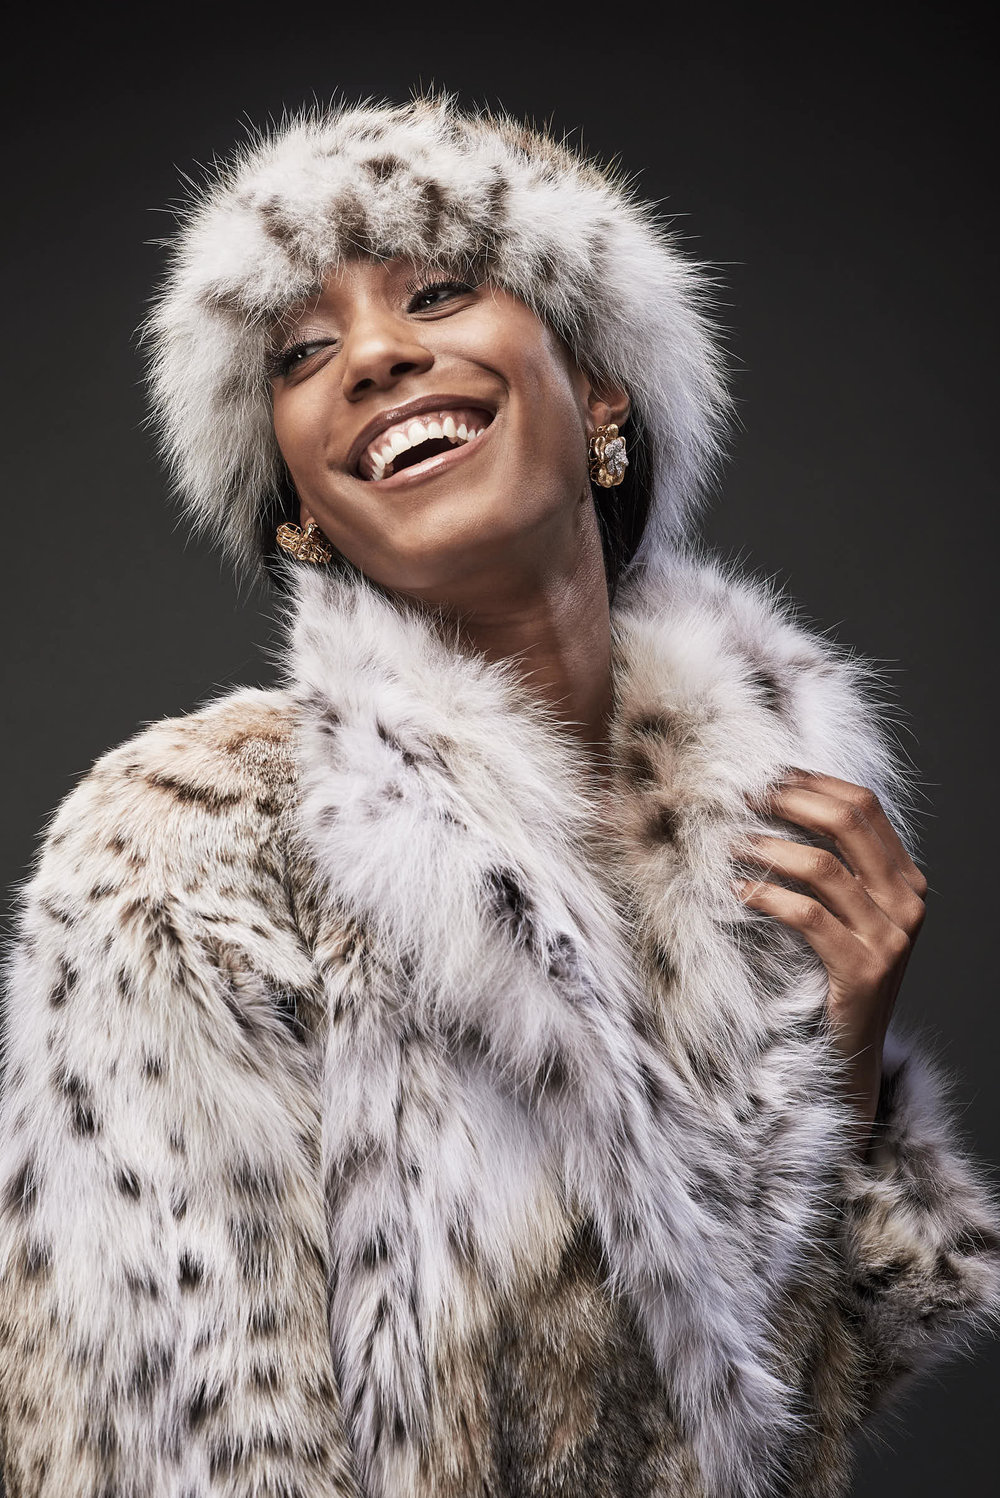 fashion-fur-white-smile-leopard-print.jpg